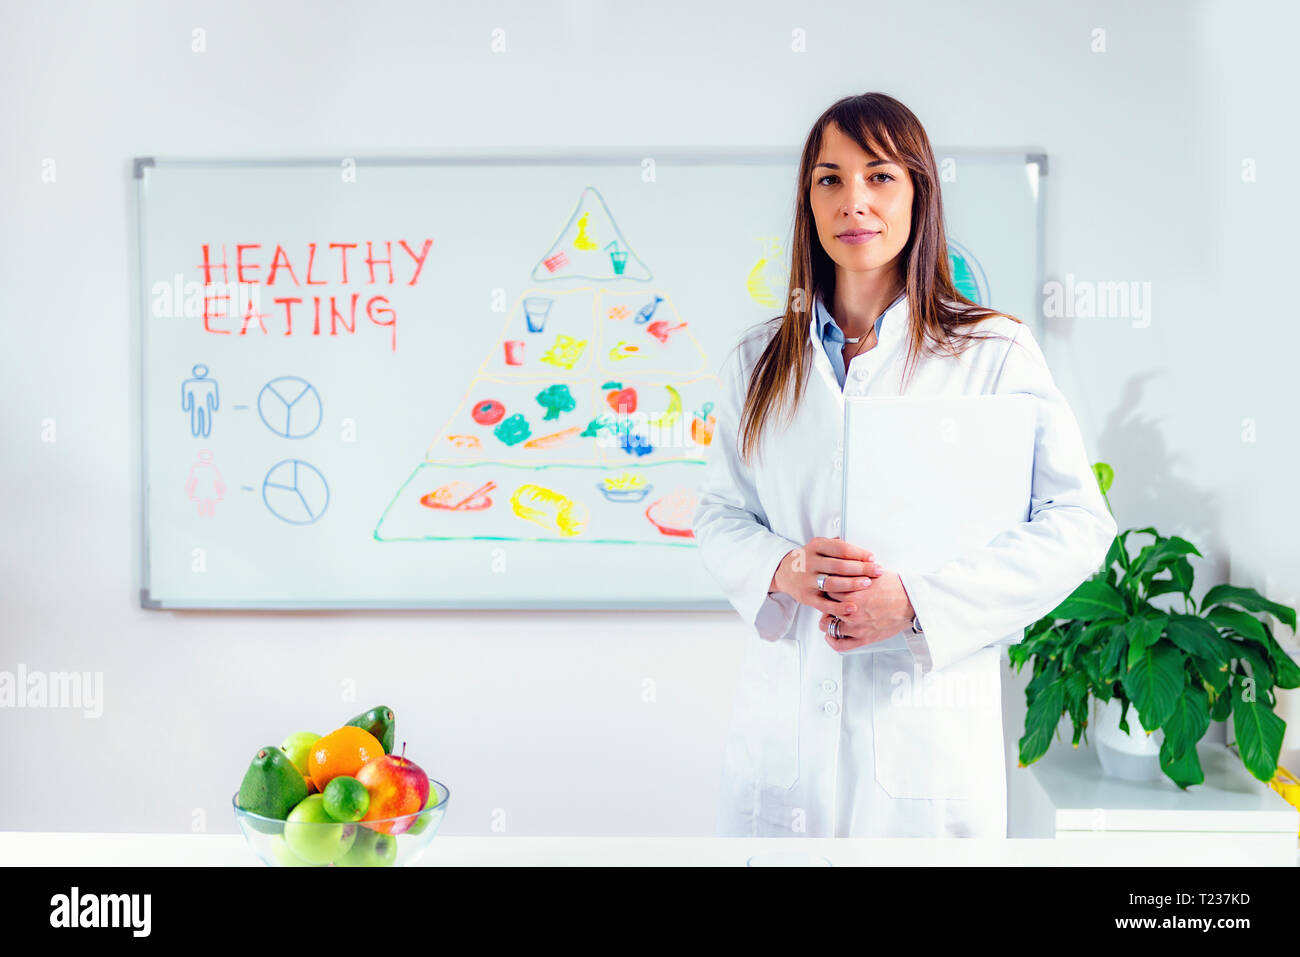 Portrait of a nutritionist. - Stock Image